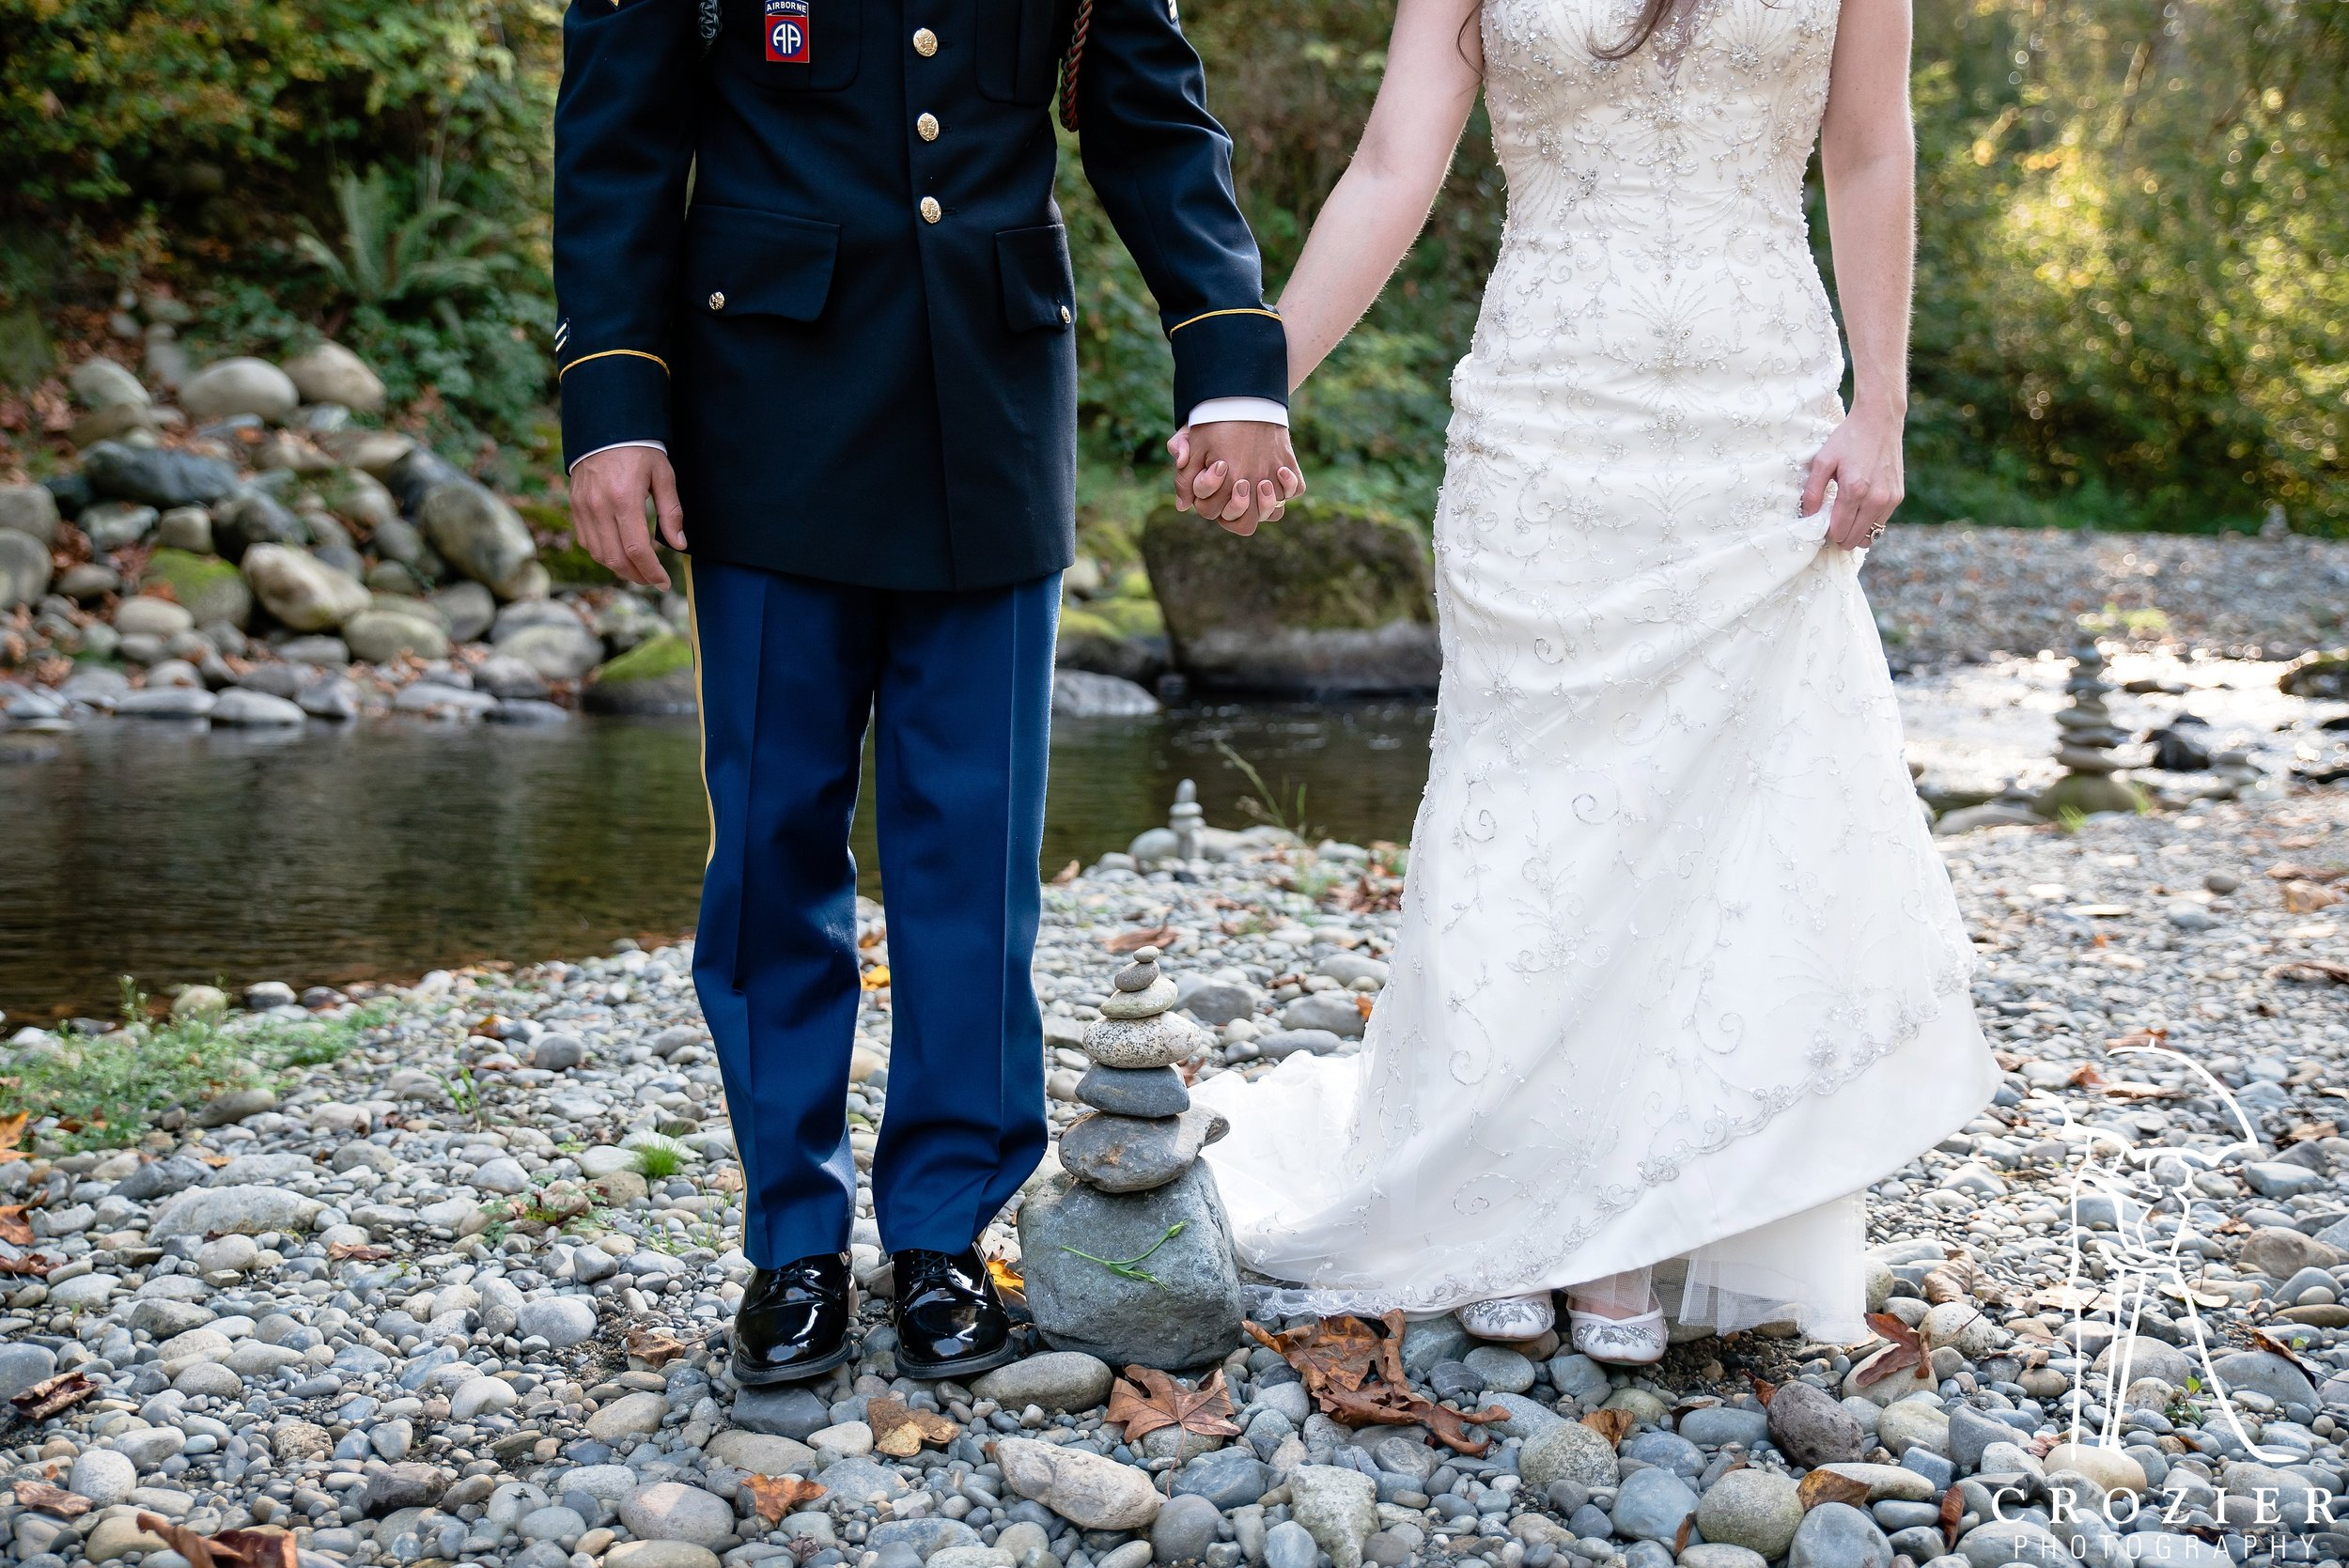 Many guests at TreeHouse Point (including  this sweet bride and groom ) enjoy building cairns on the banks of the Raging River. Photo by  John Crozier .